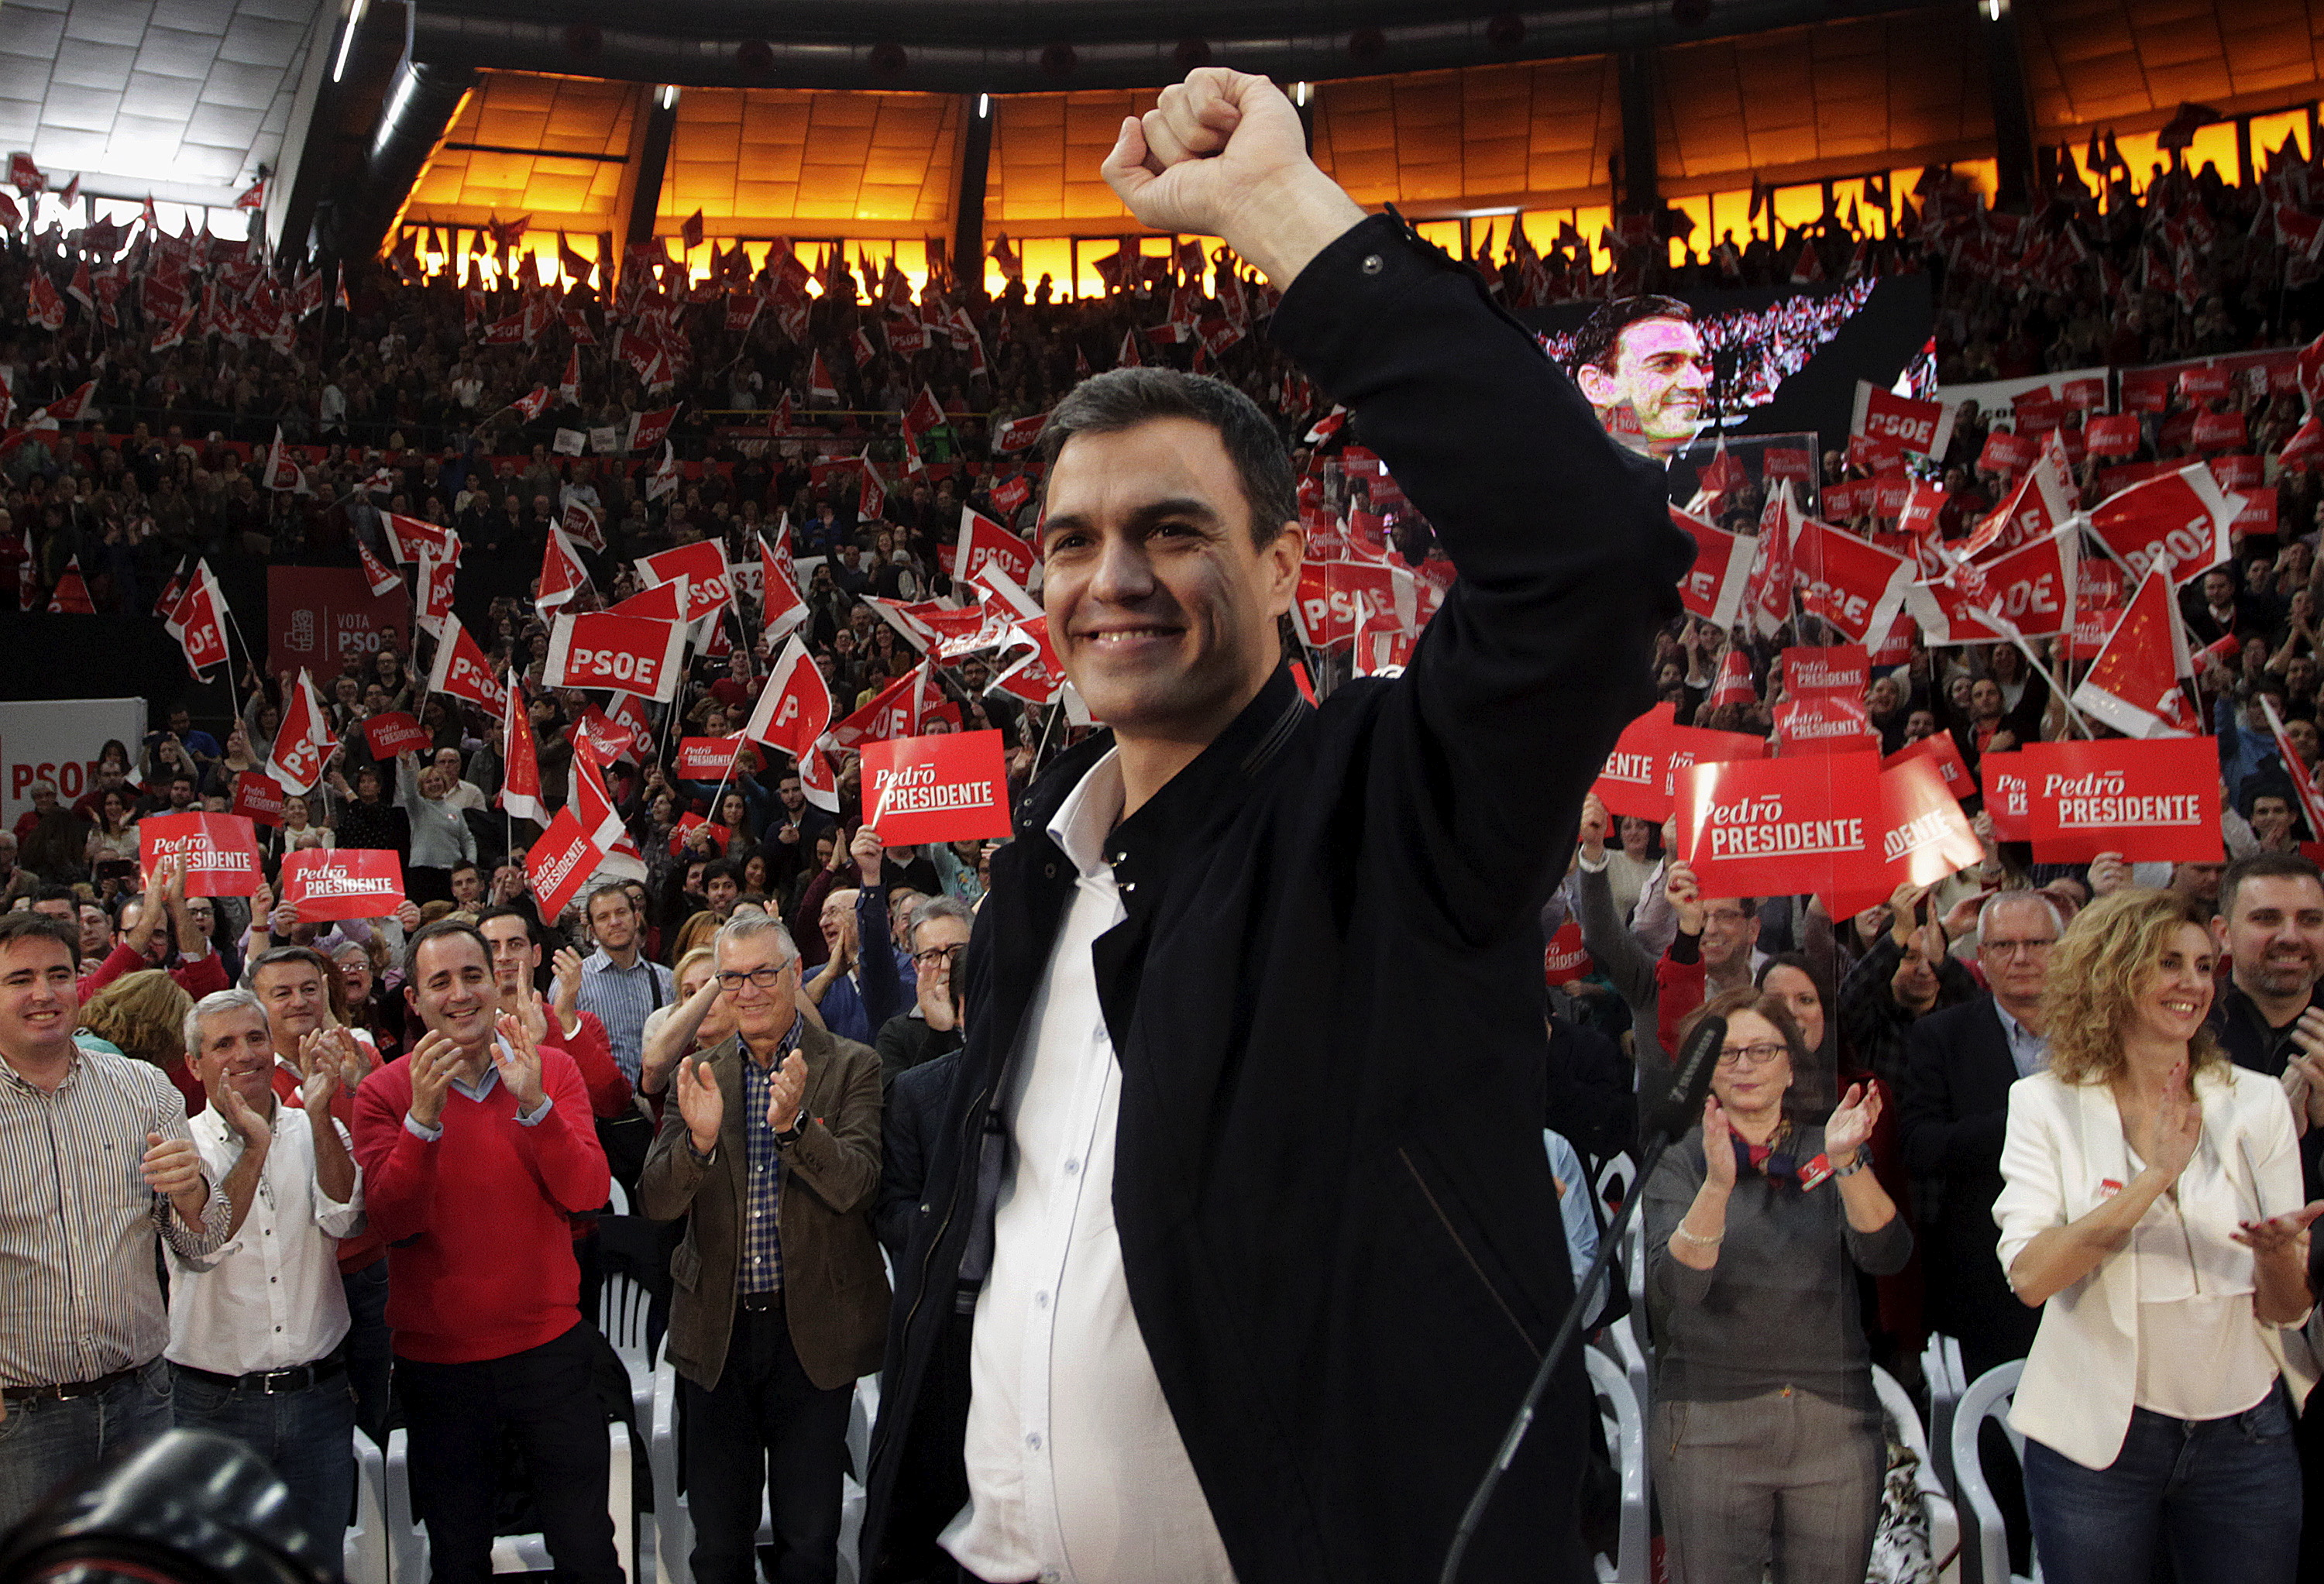 Spain's Socialist Party (PSOE) leader Pedro Sanchez, one of the four leading candidates for Spain's national election, greets supporters during an election campaign rally in Valencia, Spain, December 13, 2015. REUTERS/Heino Kalis - RTX1YGTH